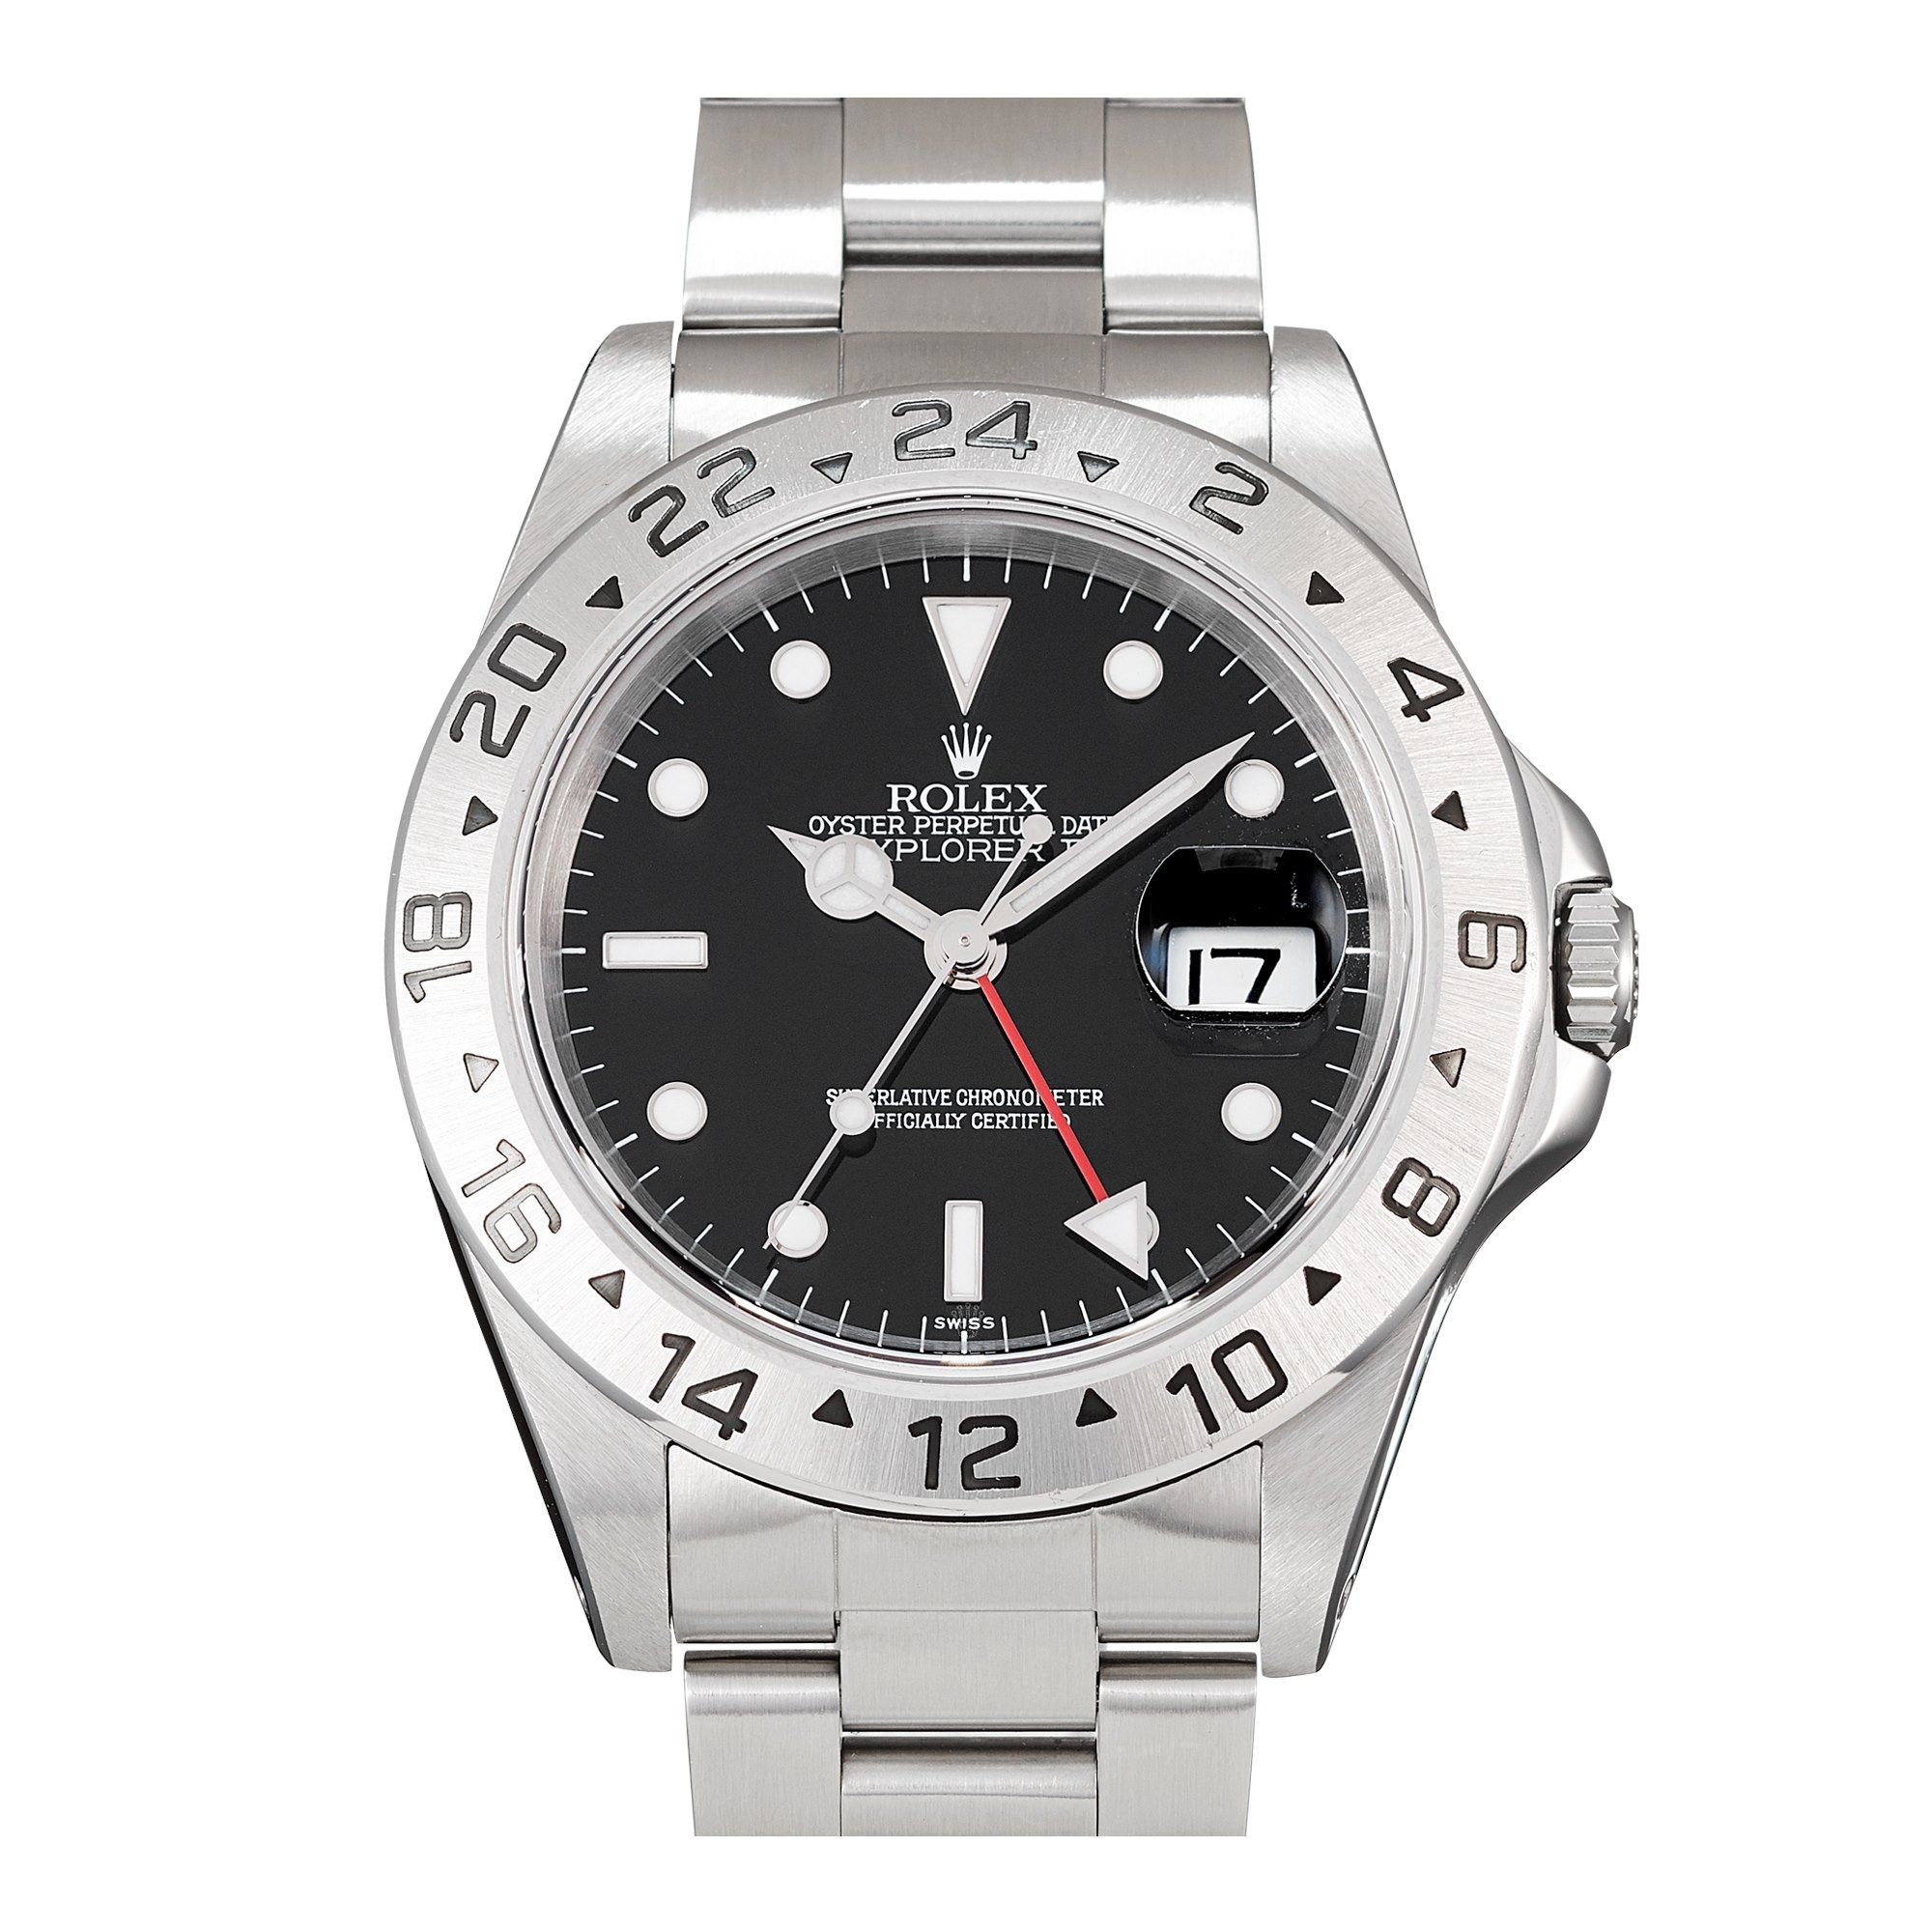 Rolex Explorer II Stainless Steel 16570